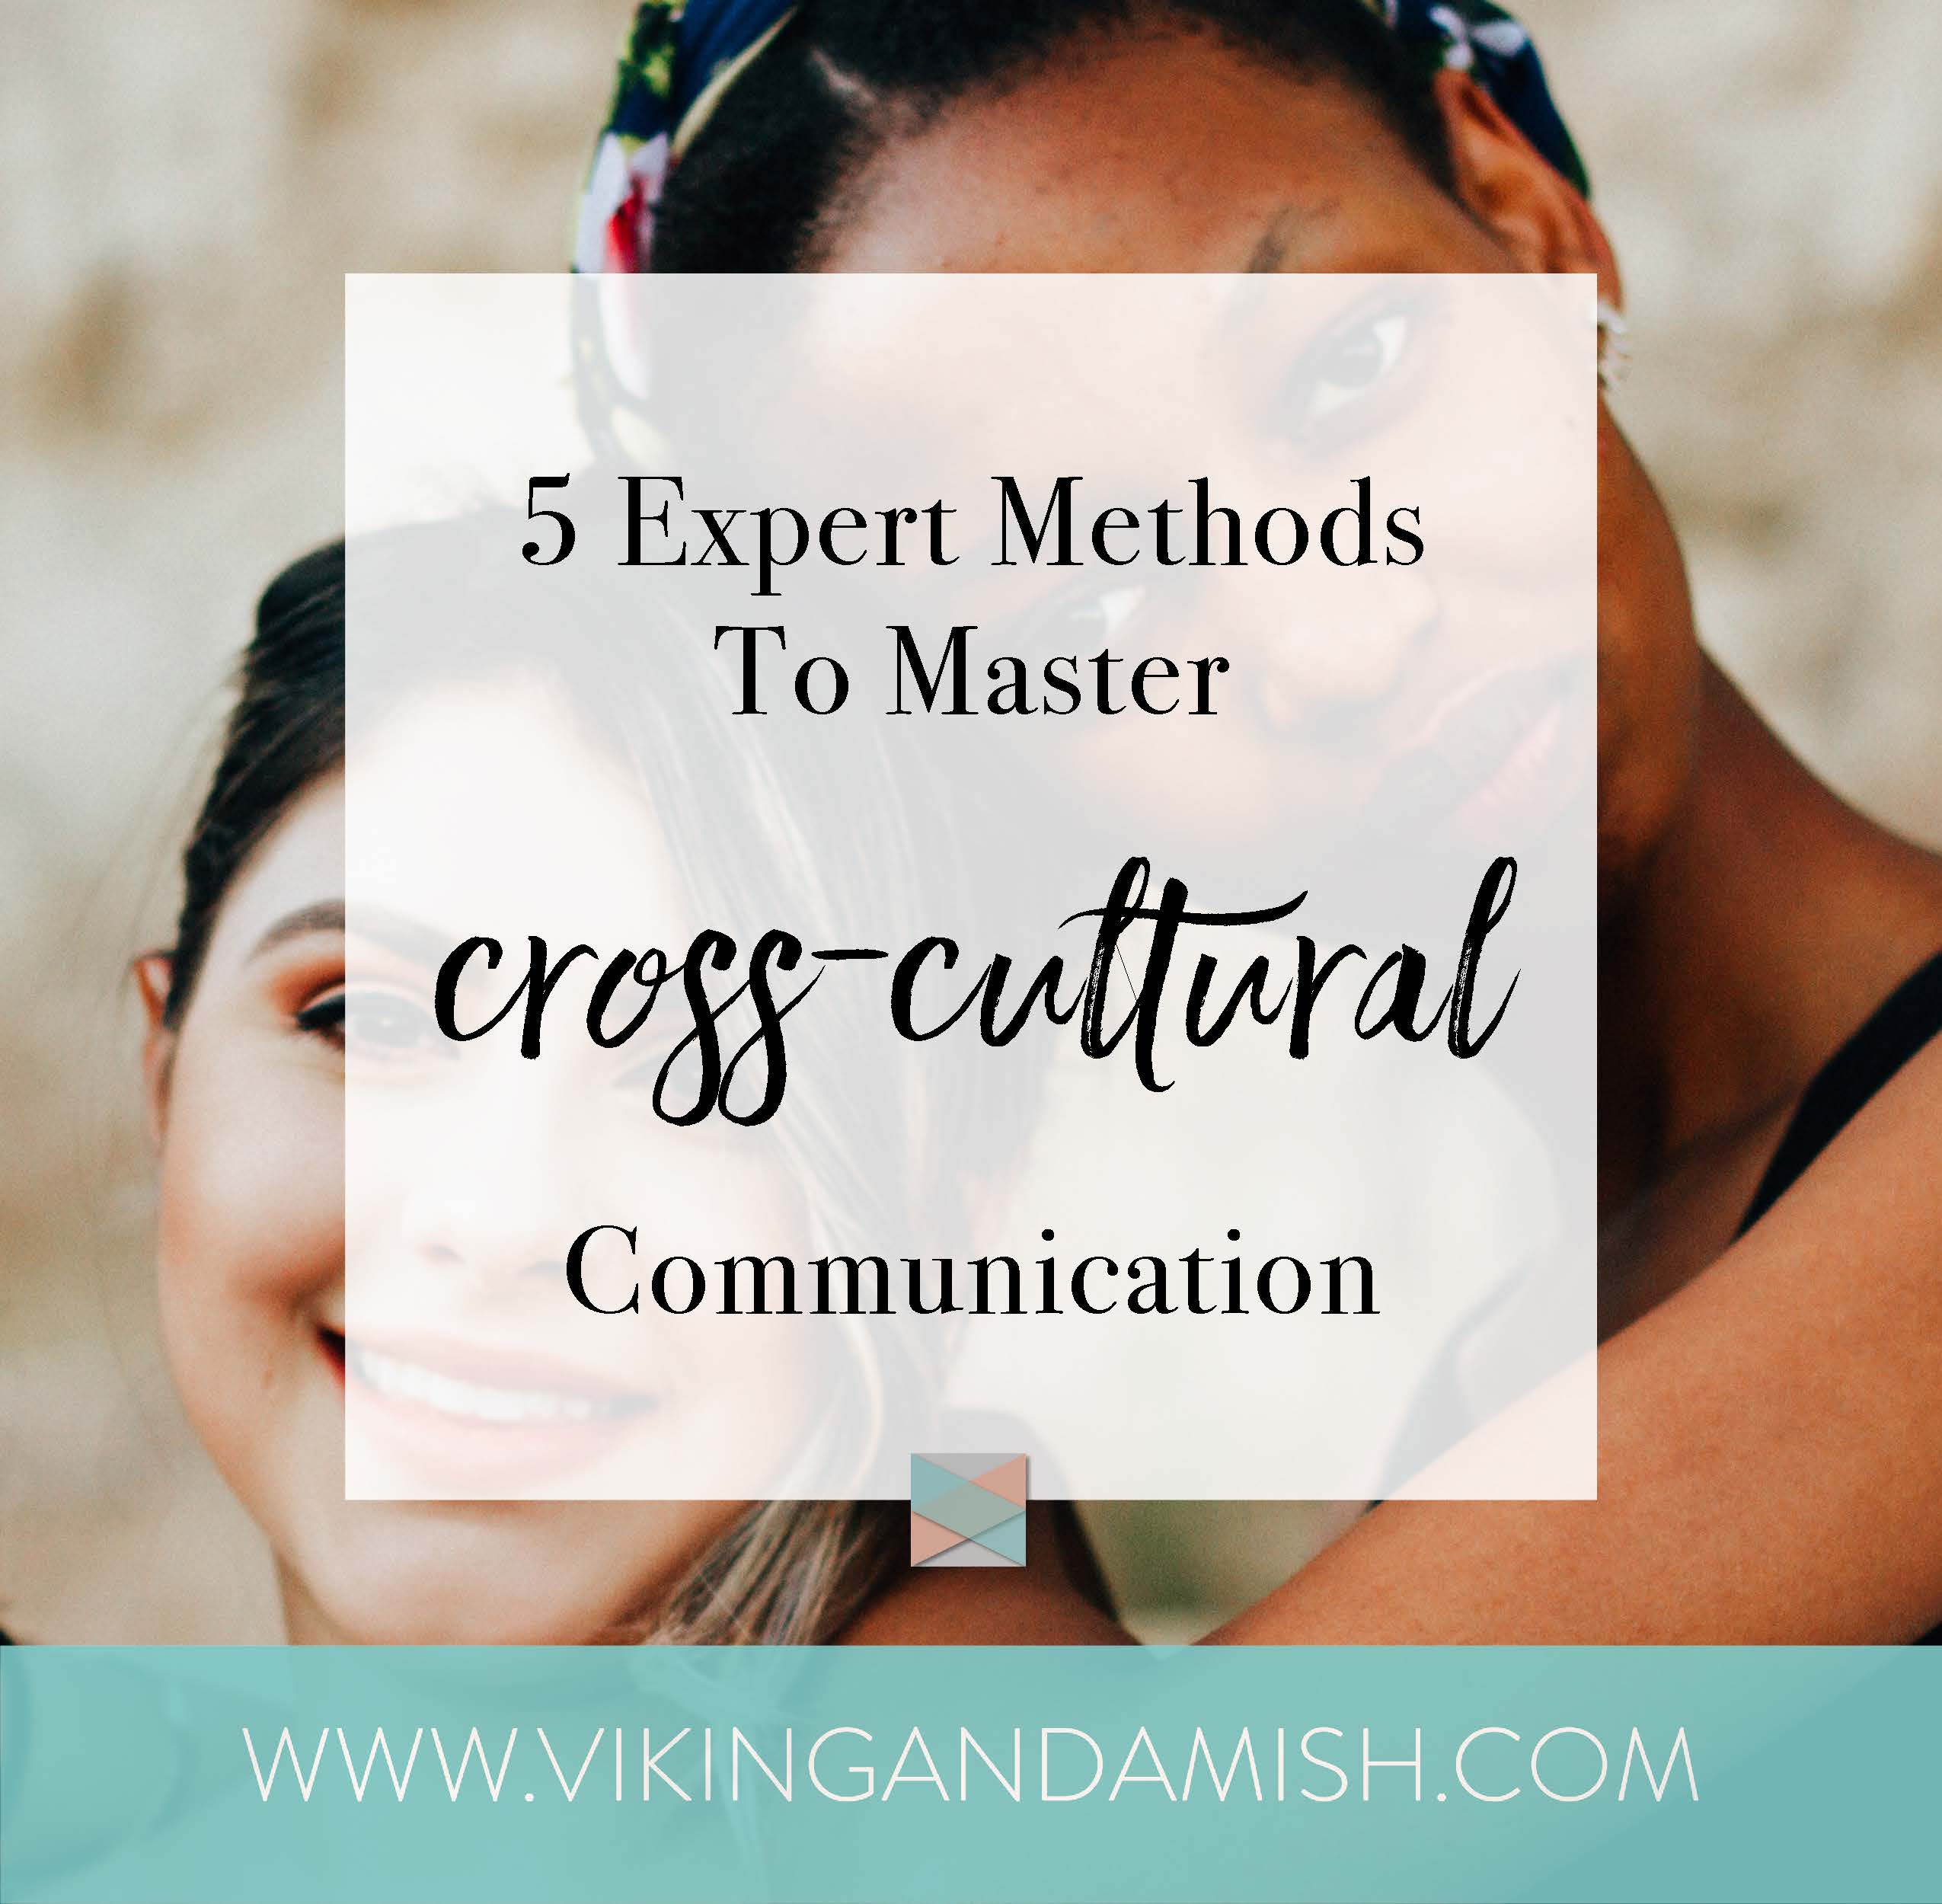 In a cross-cultural misunderstanding are frequent. Use these helpful tools to master cross-cultural communication in your relationships.